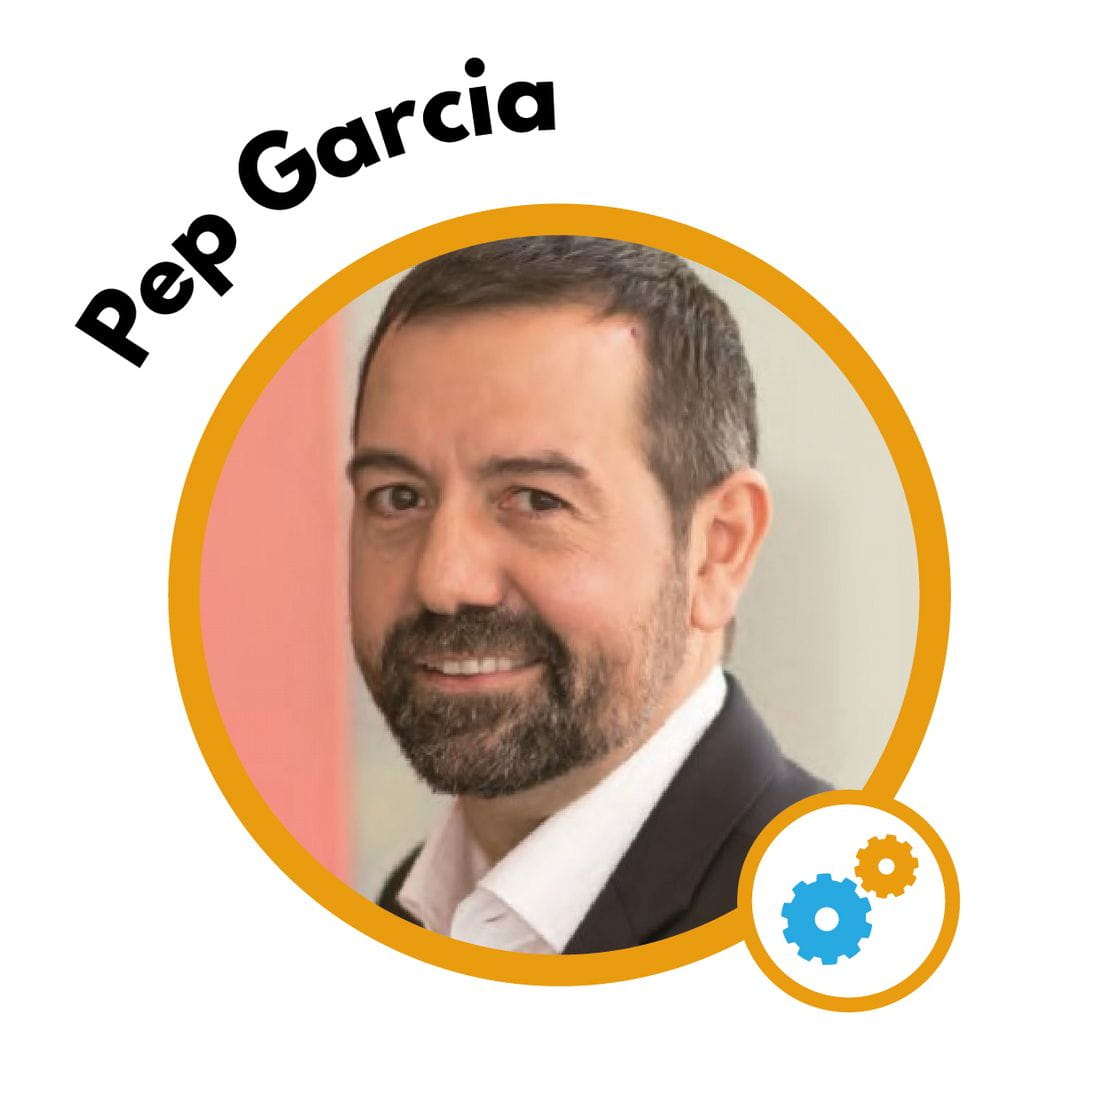 Pep Garcia - Creativation Talks 2018